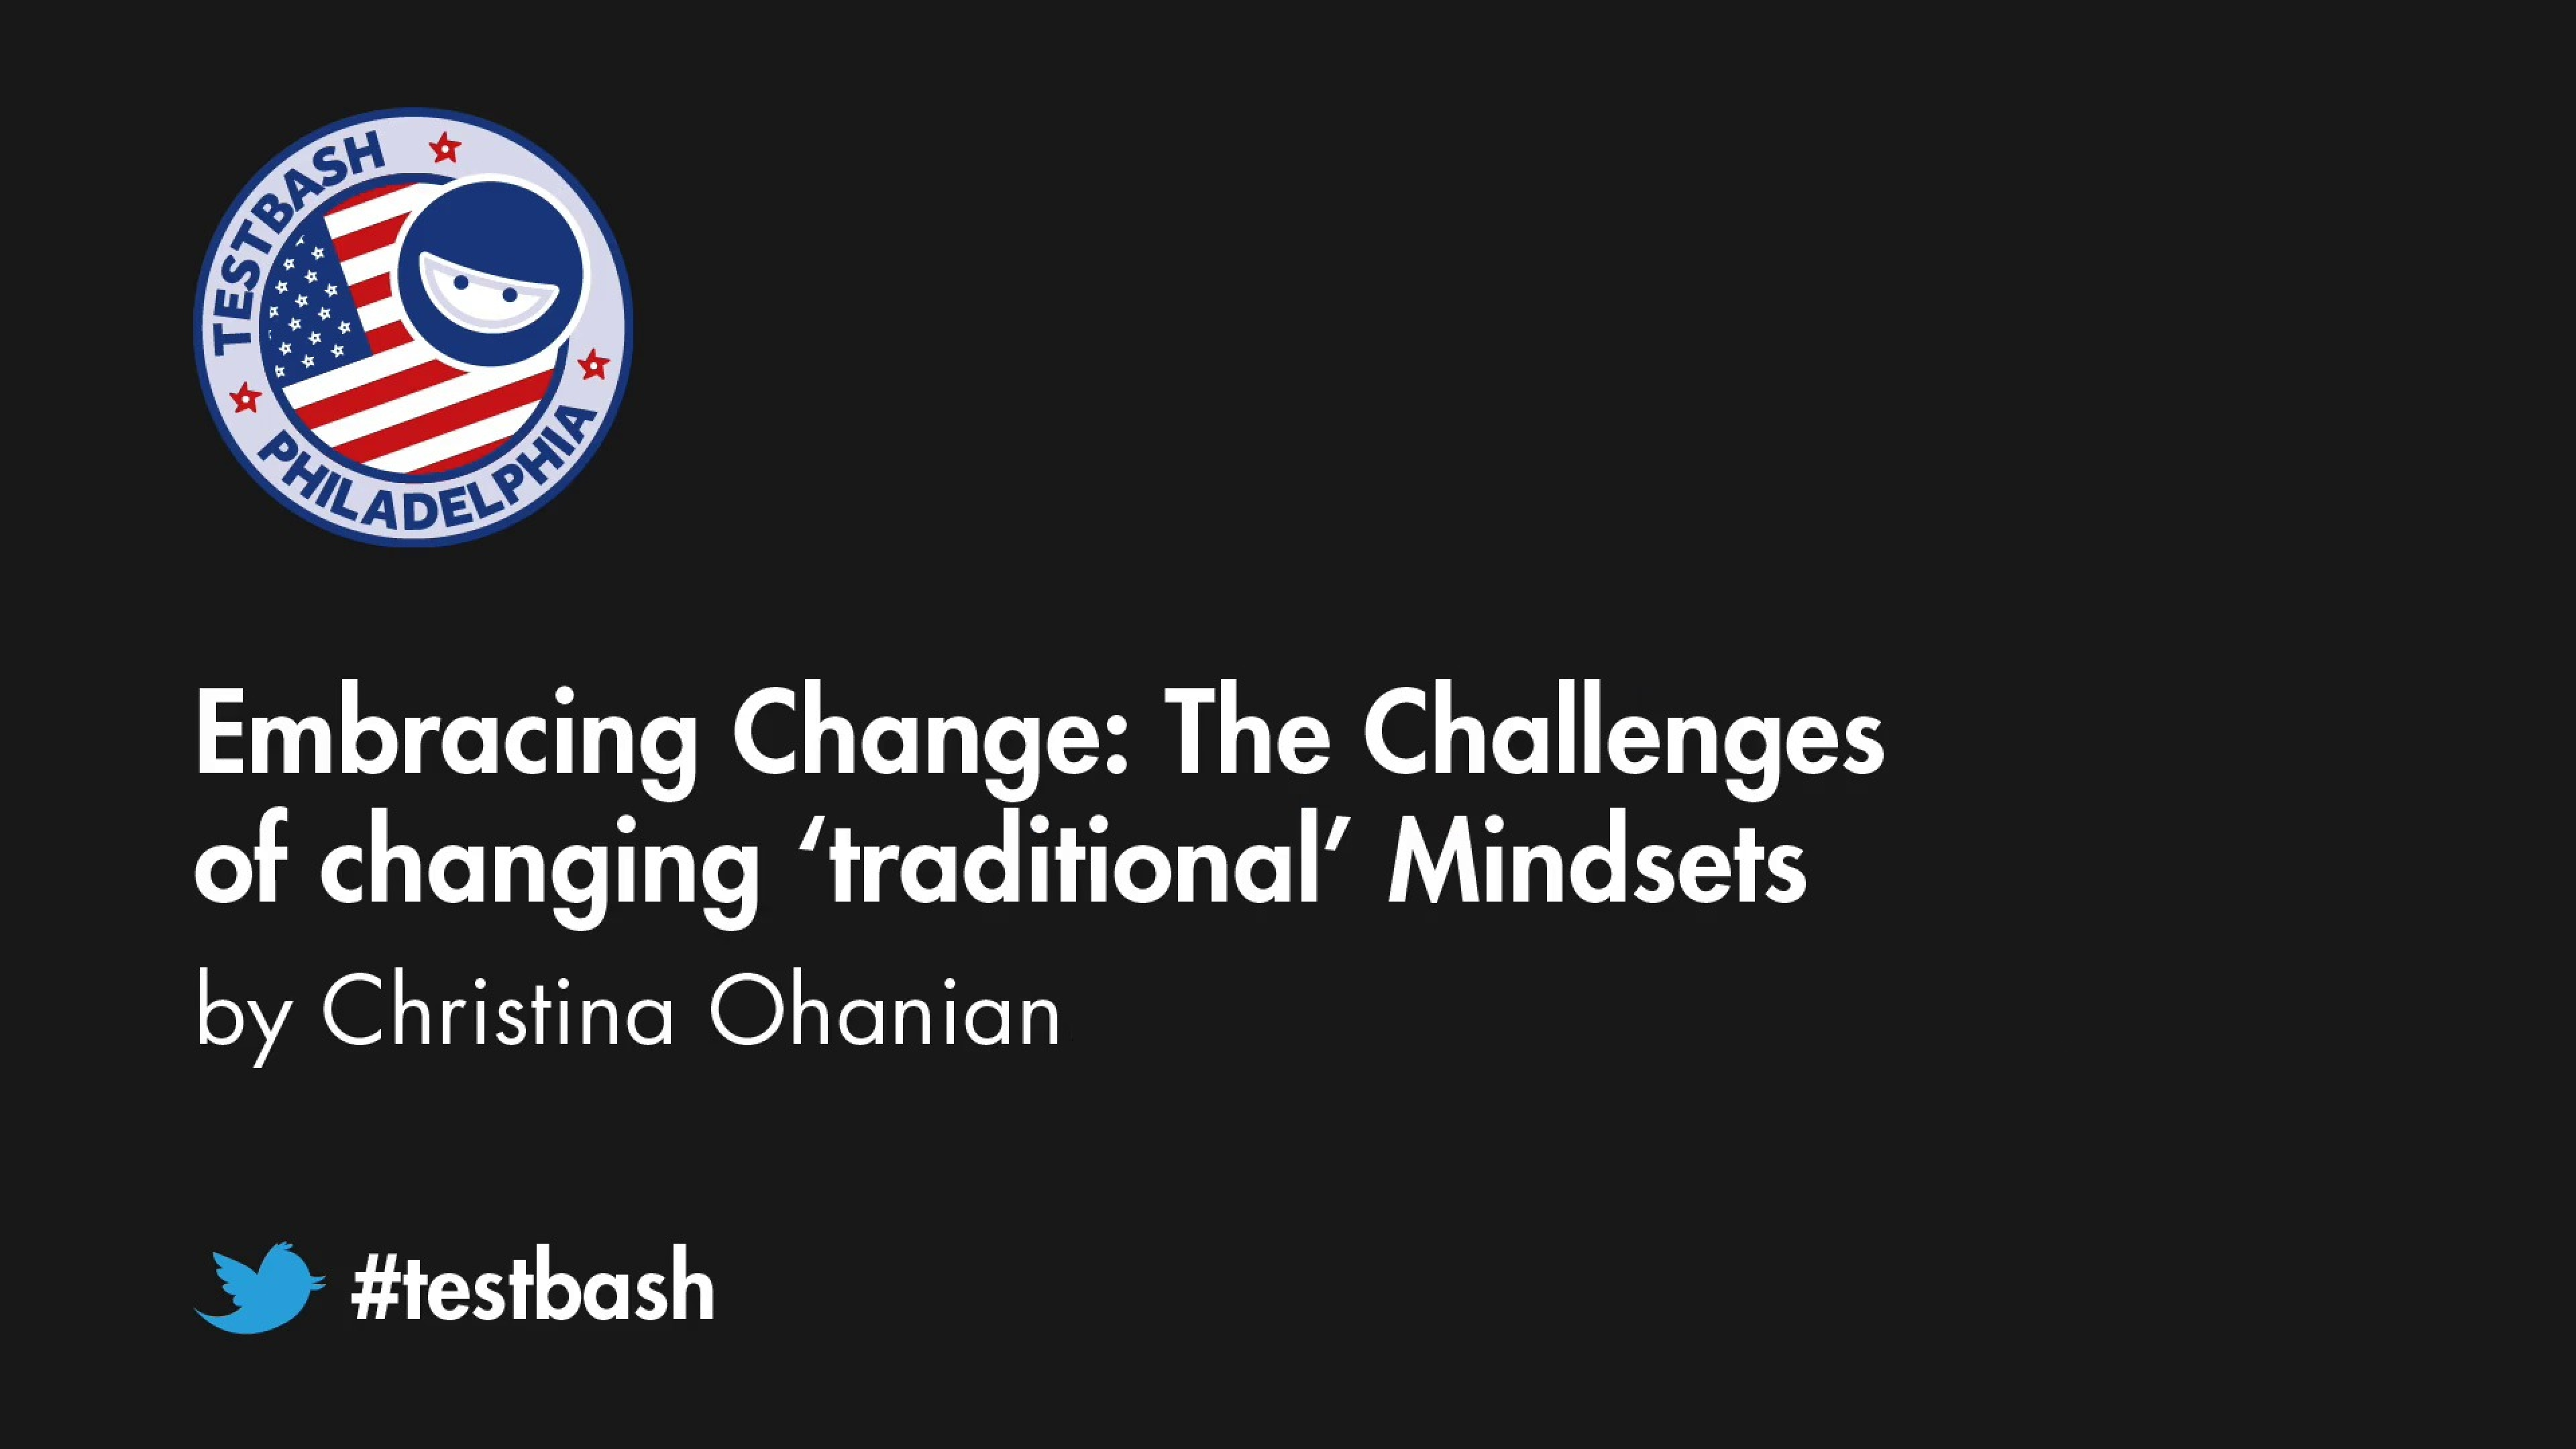 Embracing Change: The challenges of changing 'traditional' mindsets – Christina Ohanian